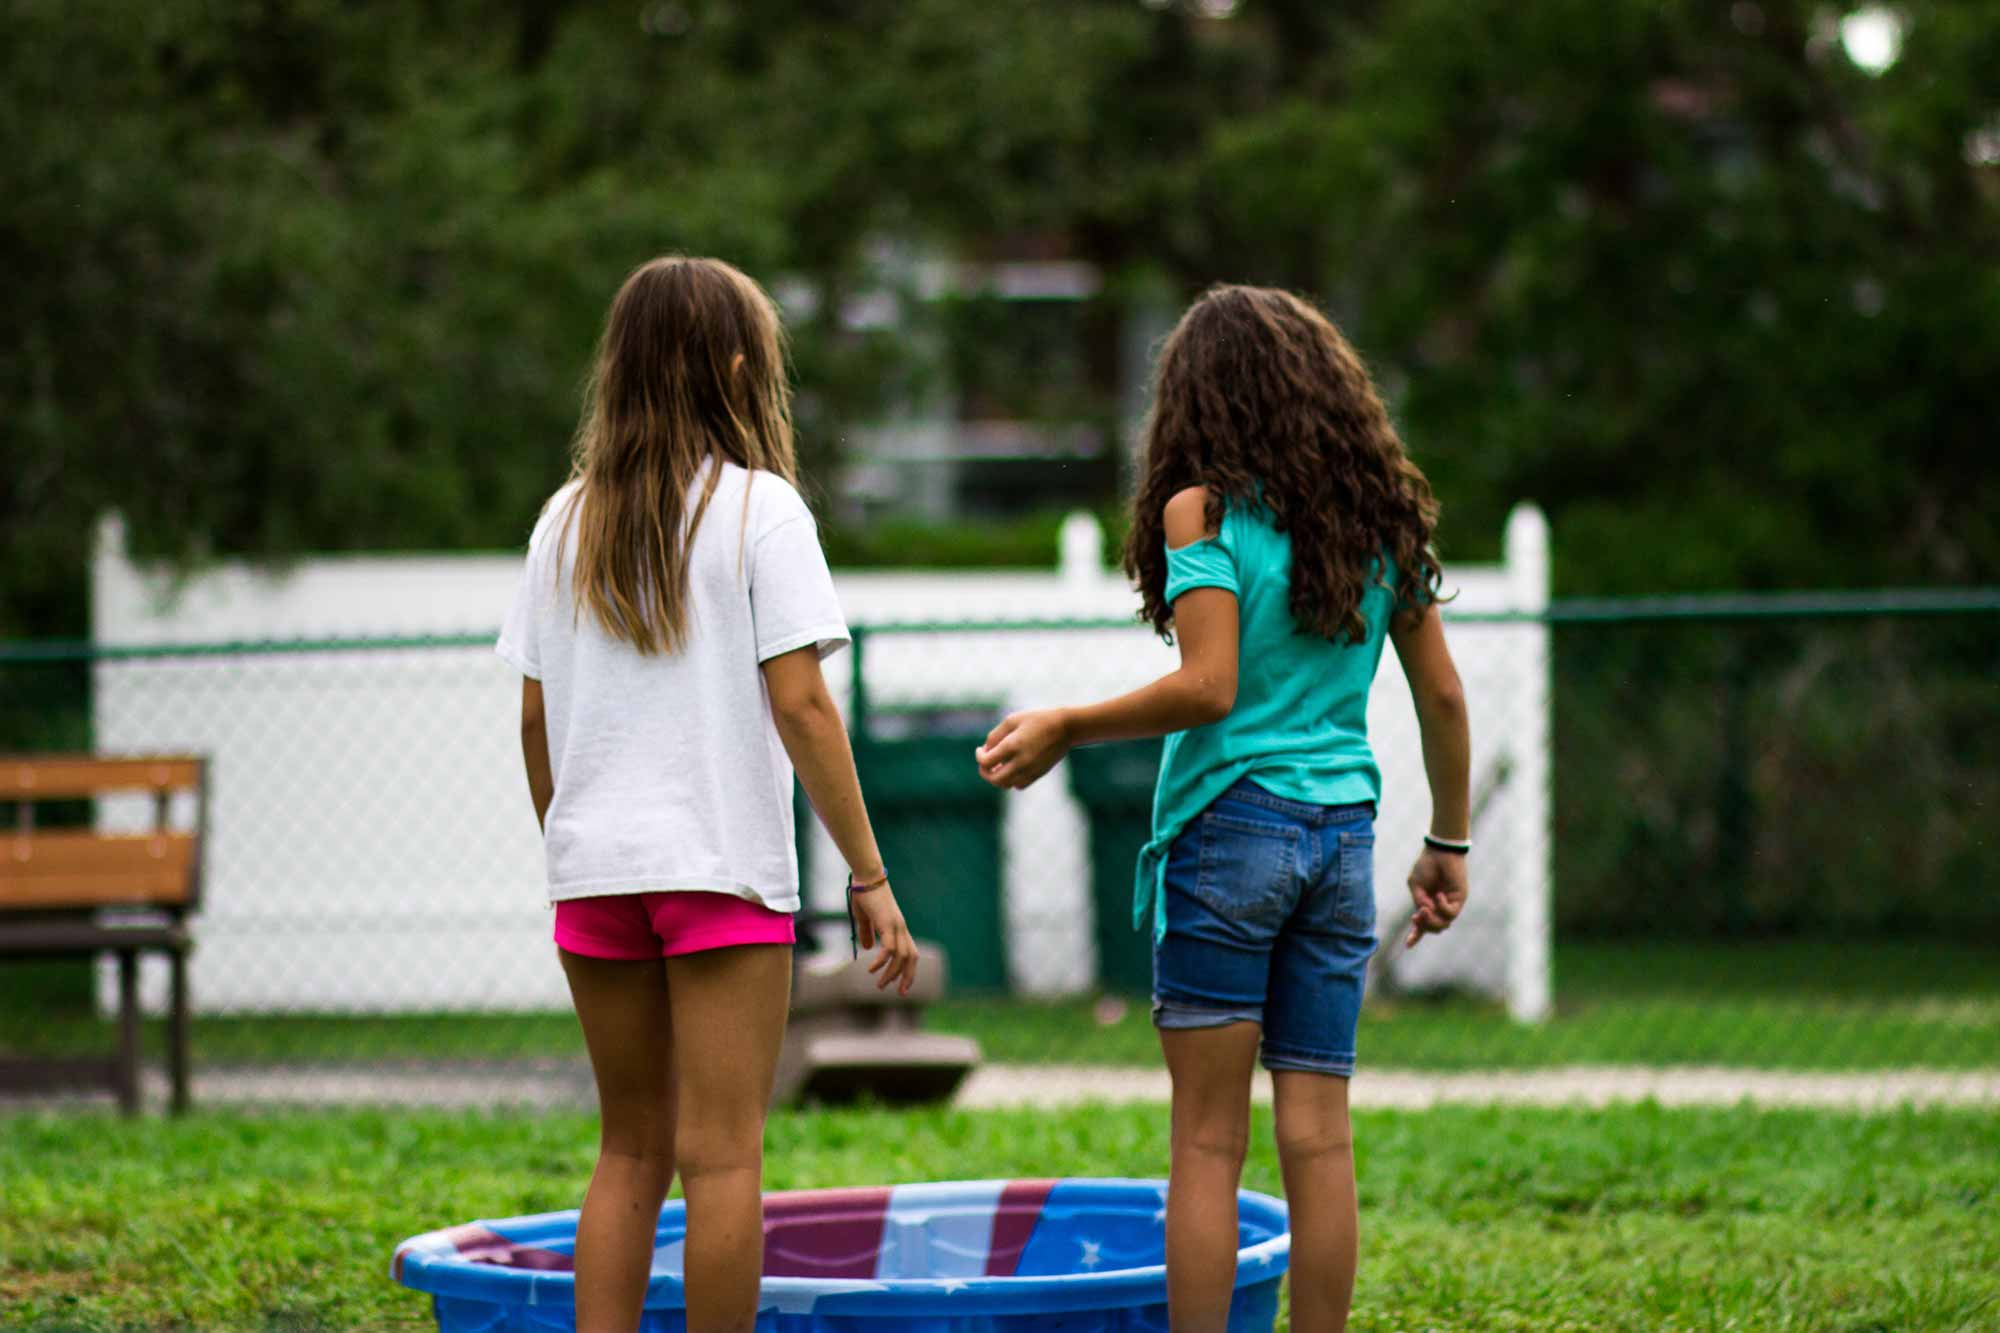 Girls playing near wading pool